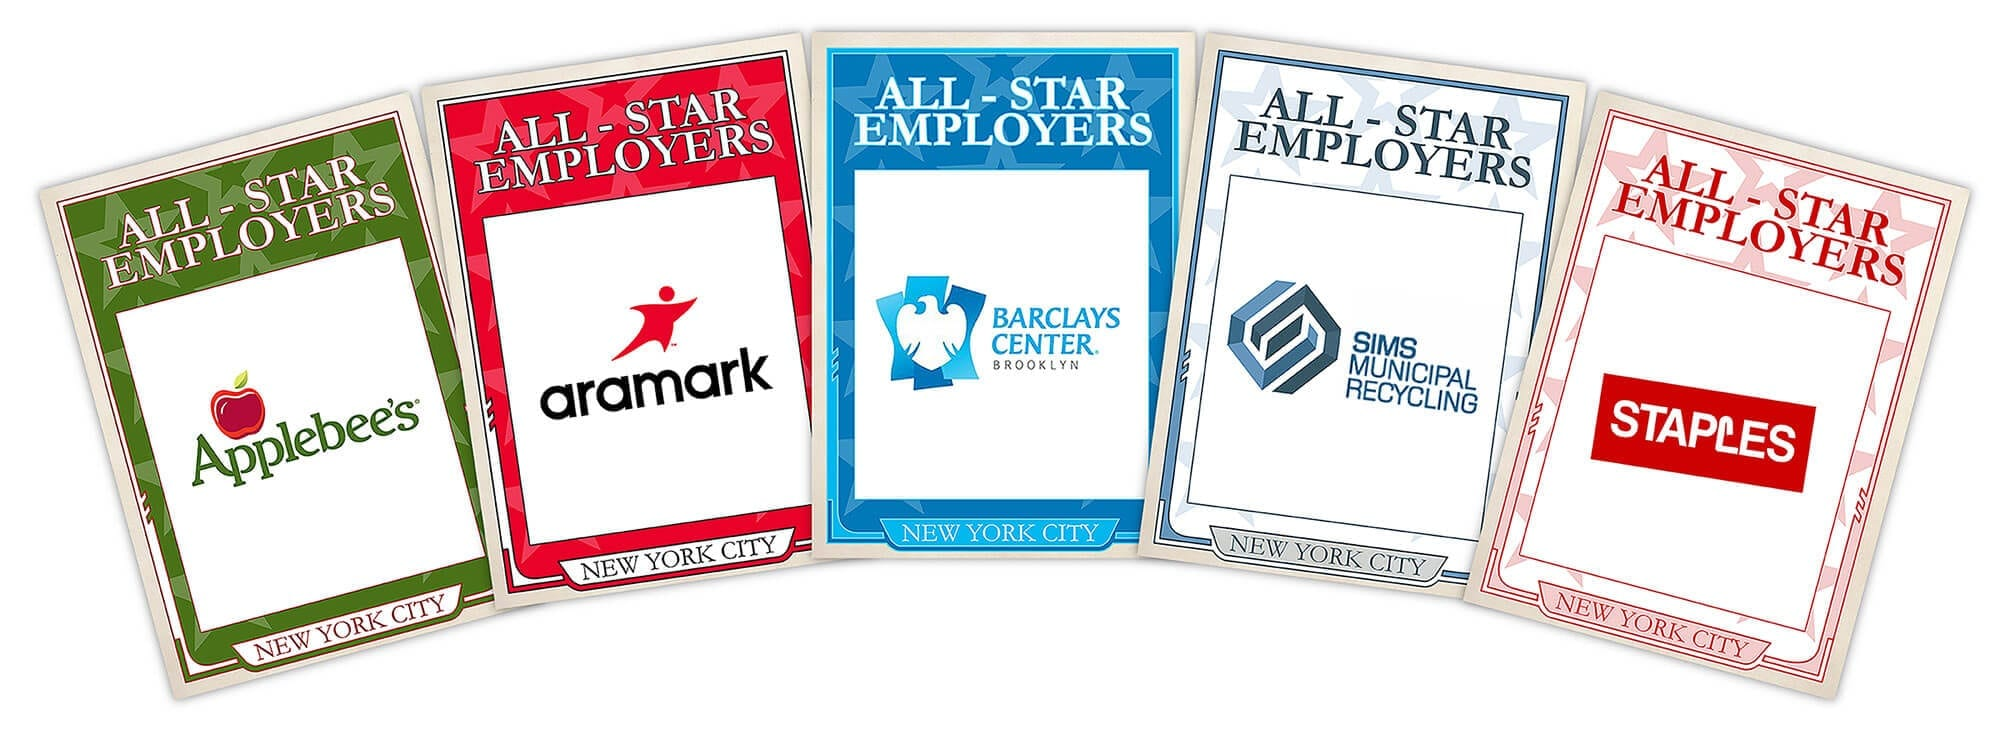 Employer Cards